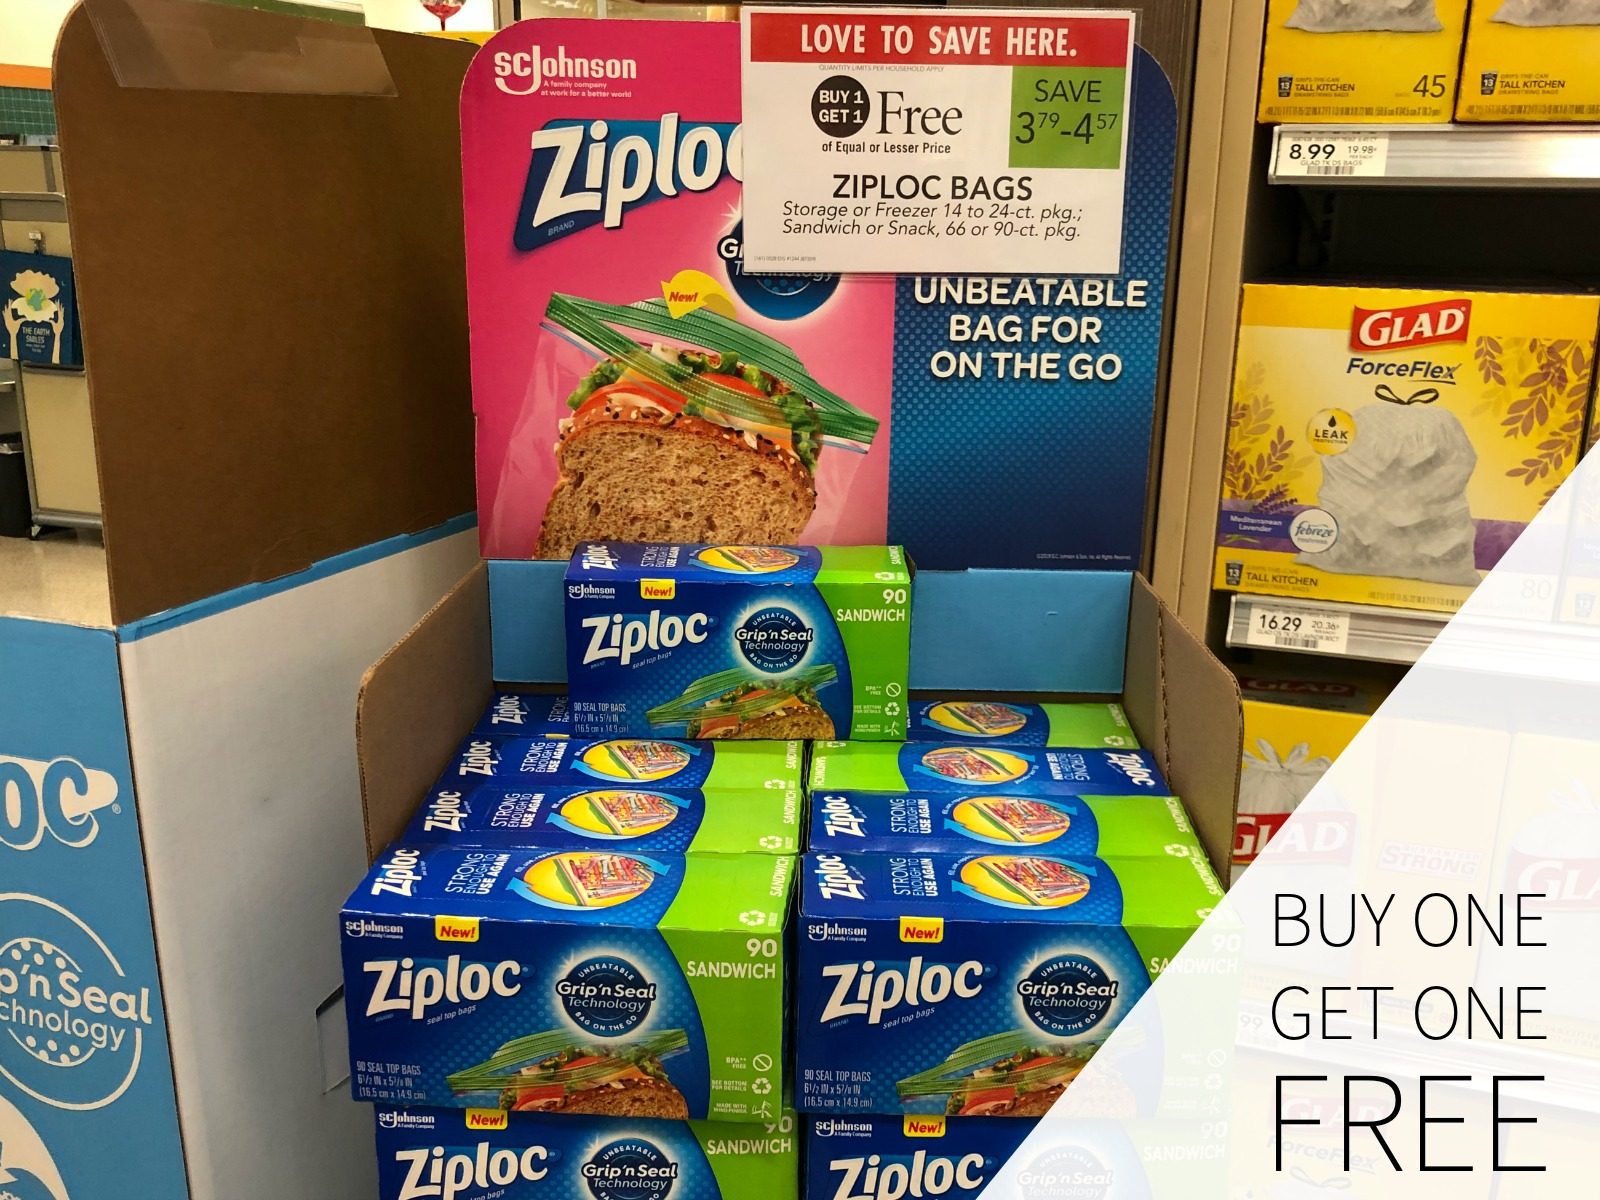 Trust Ziploc®Brand Products For Your Summer Fun - Save Now At Publix on I Heart Publix 2